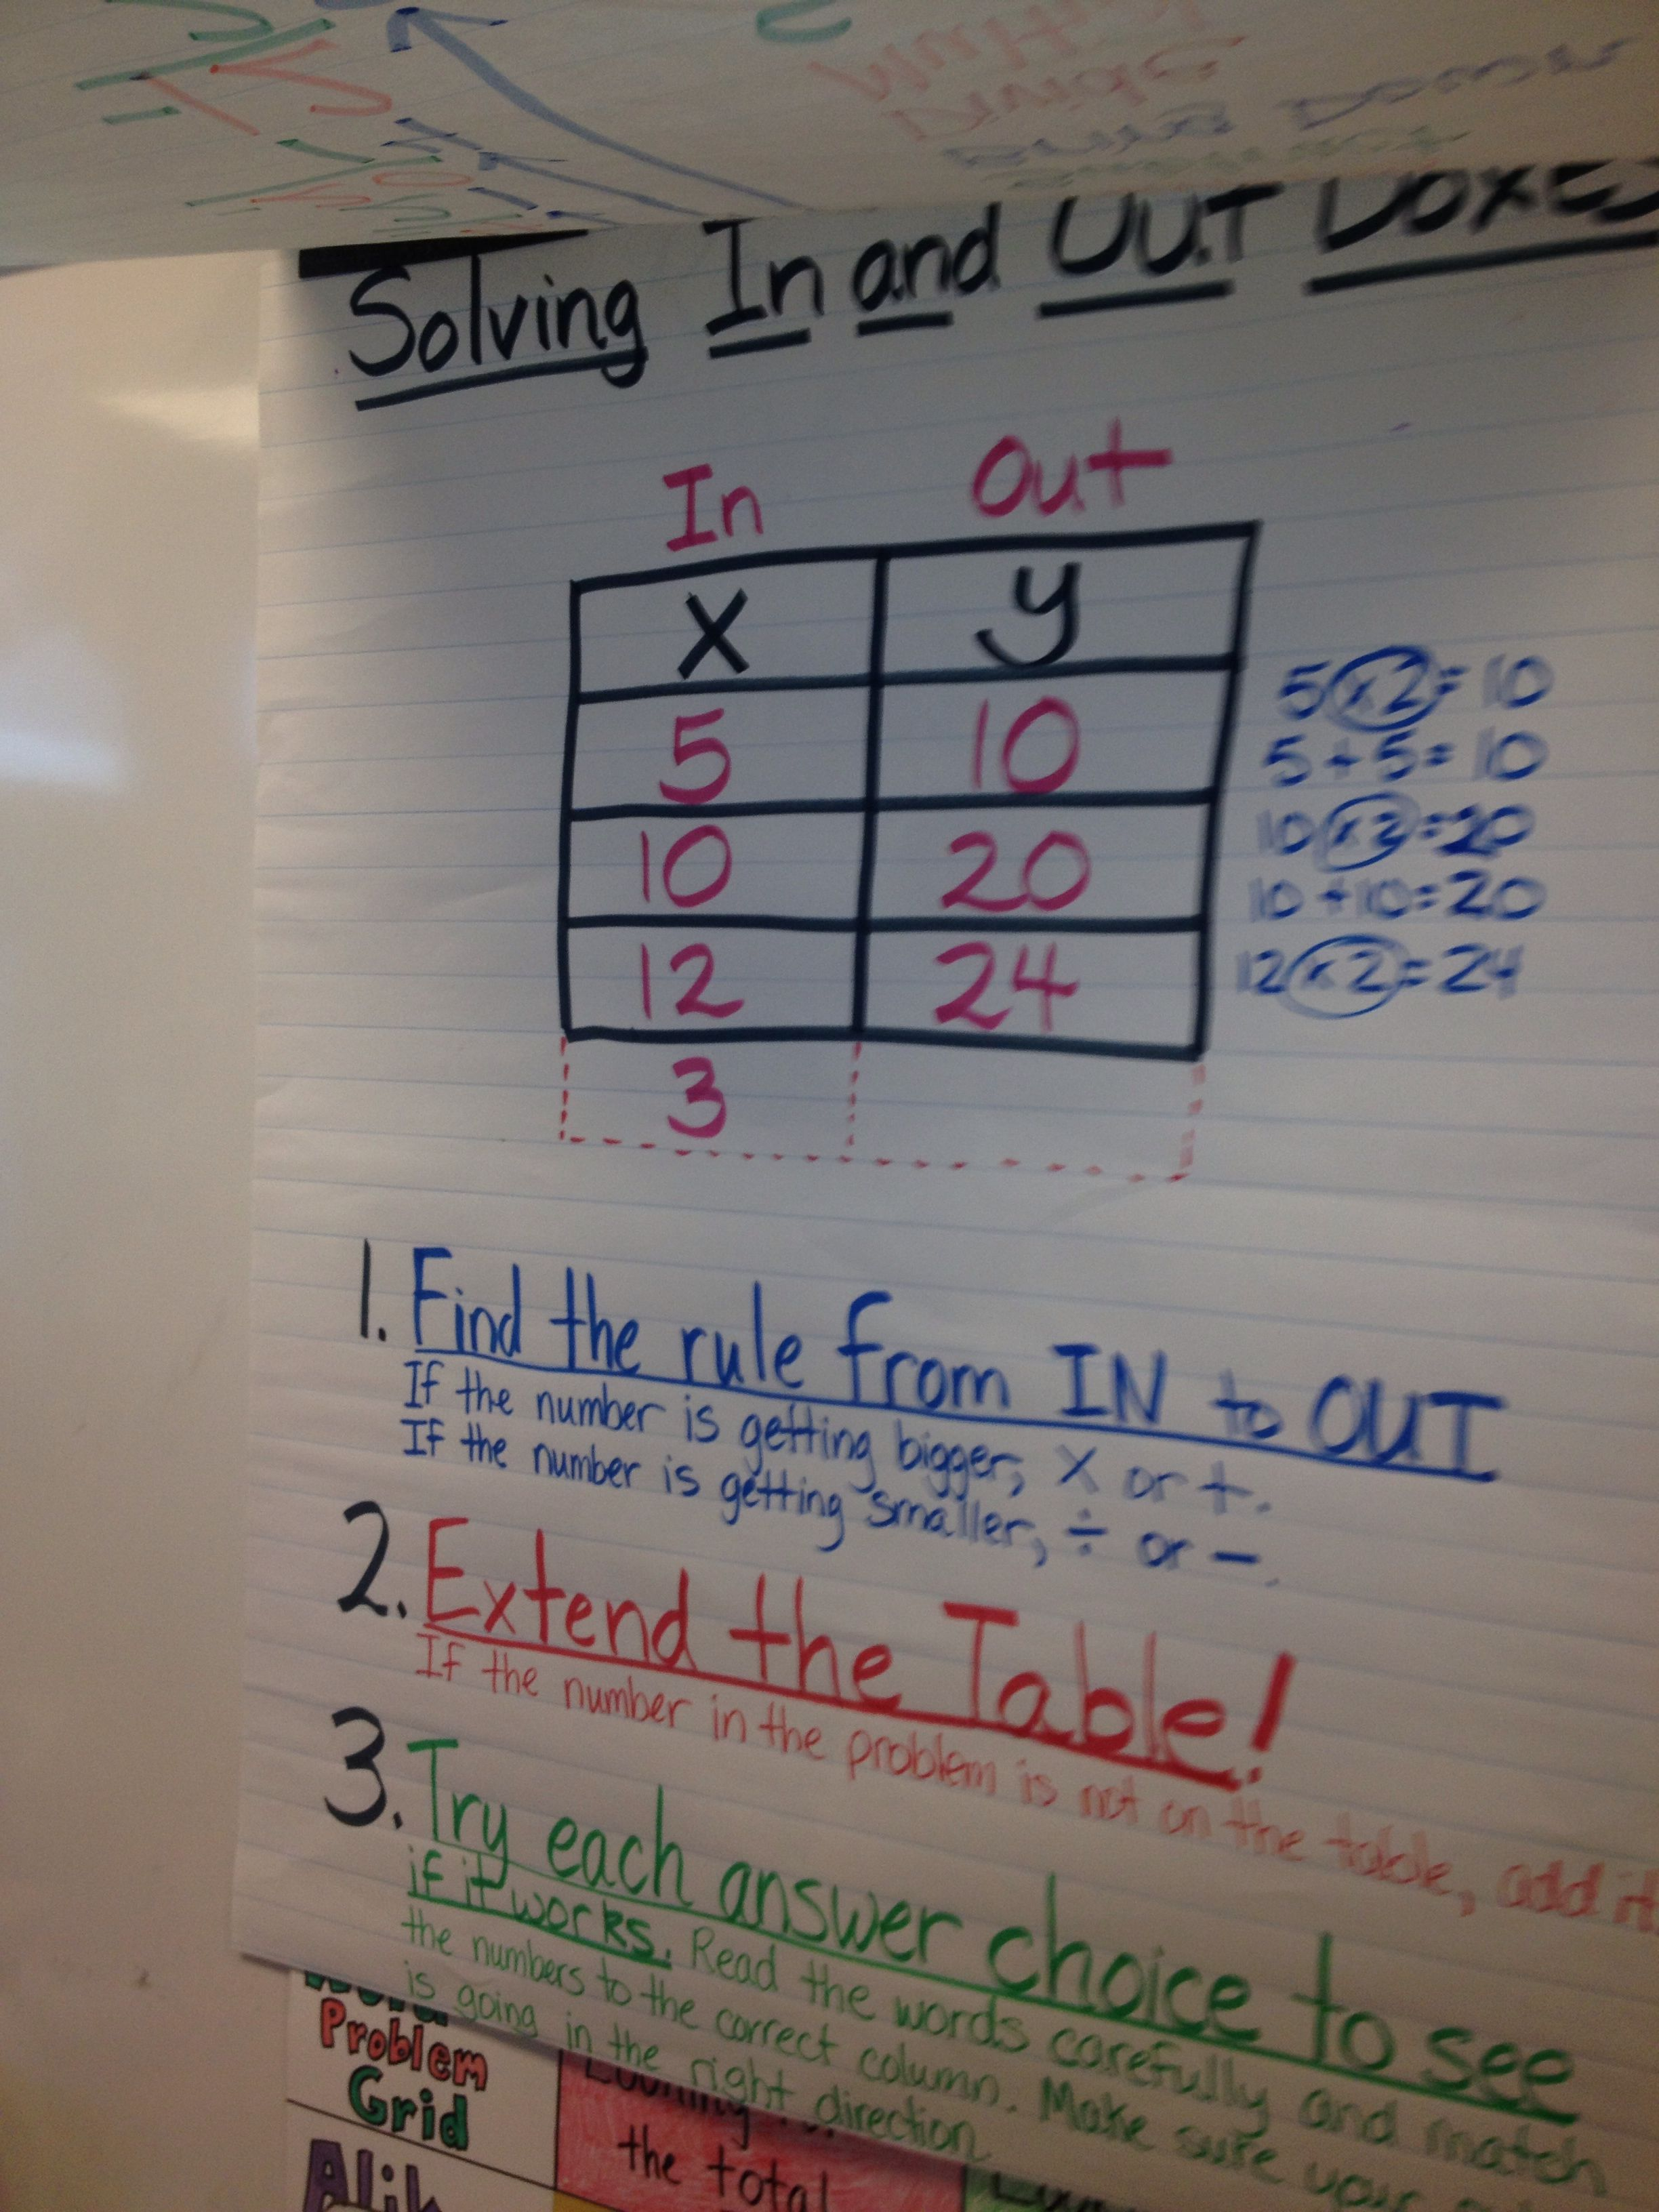 medium resolution of Solving in and out tables   Free math worksheets